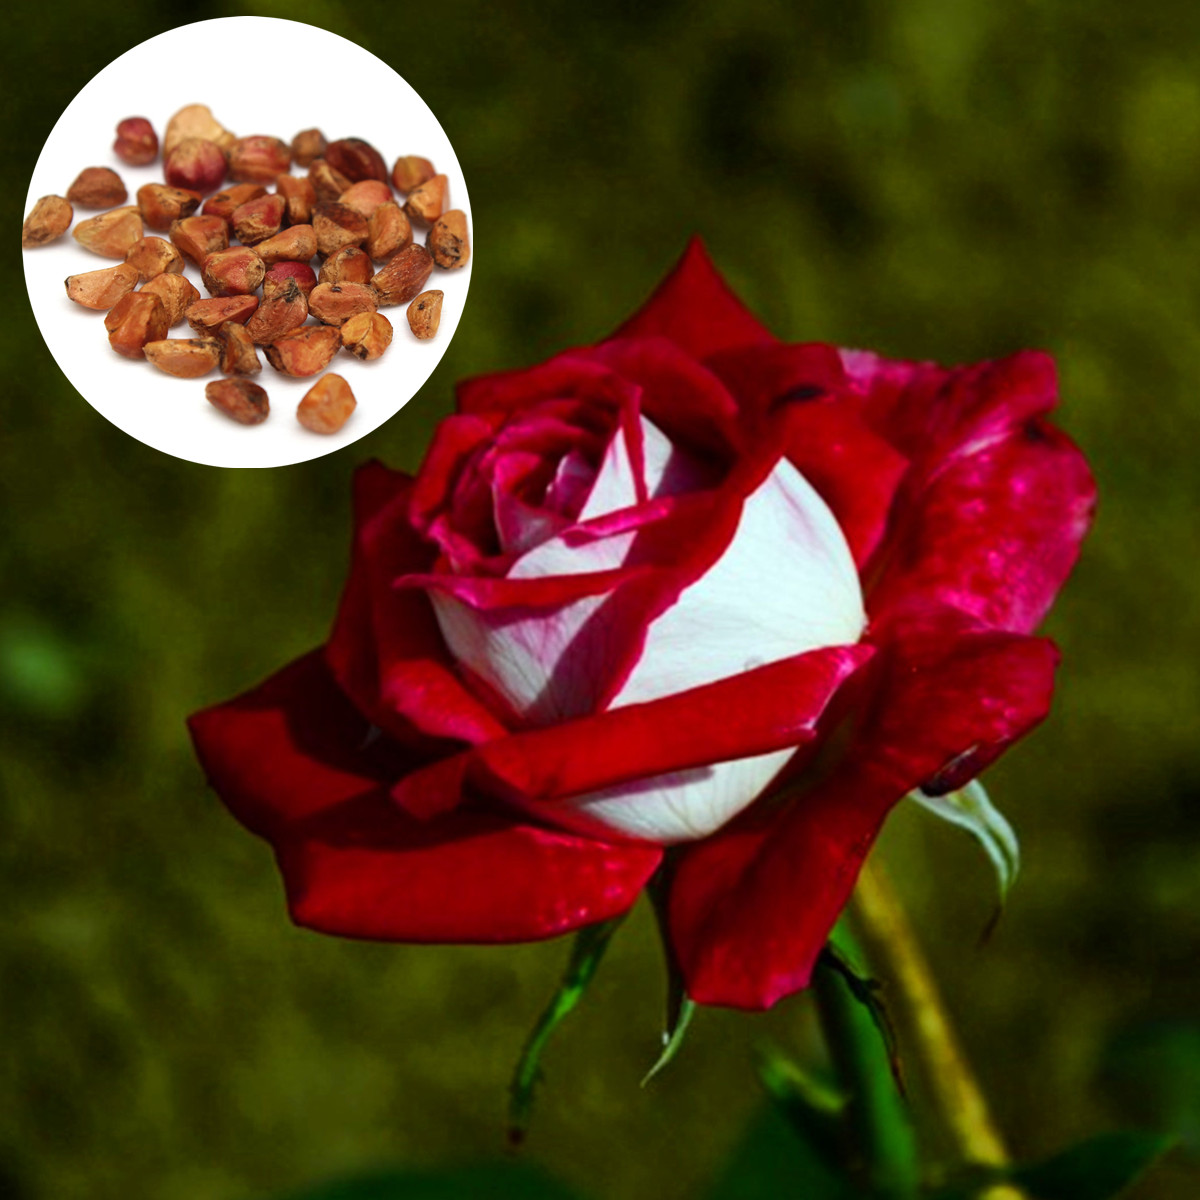 60pcs rare seed osiria ruby rose red with white flower seeds garden plant ebay - When to plant roses ...